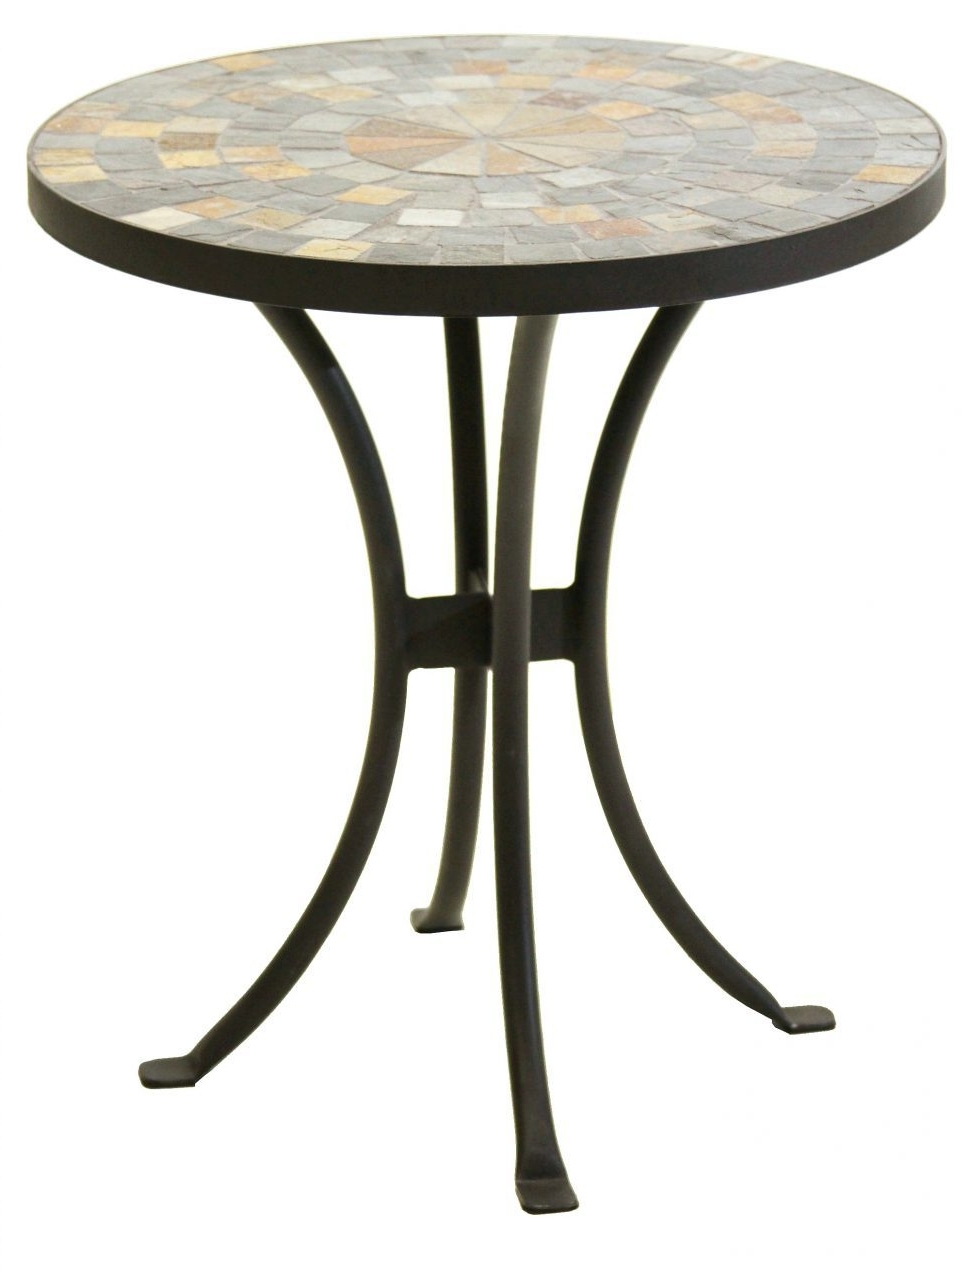 Most Up To Date Patio Umbrellas With Accent Table Intended For Arresting Umbrella Hole Small Patio Table With As Wells As Patio (View 10 of 20)